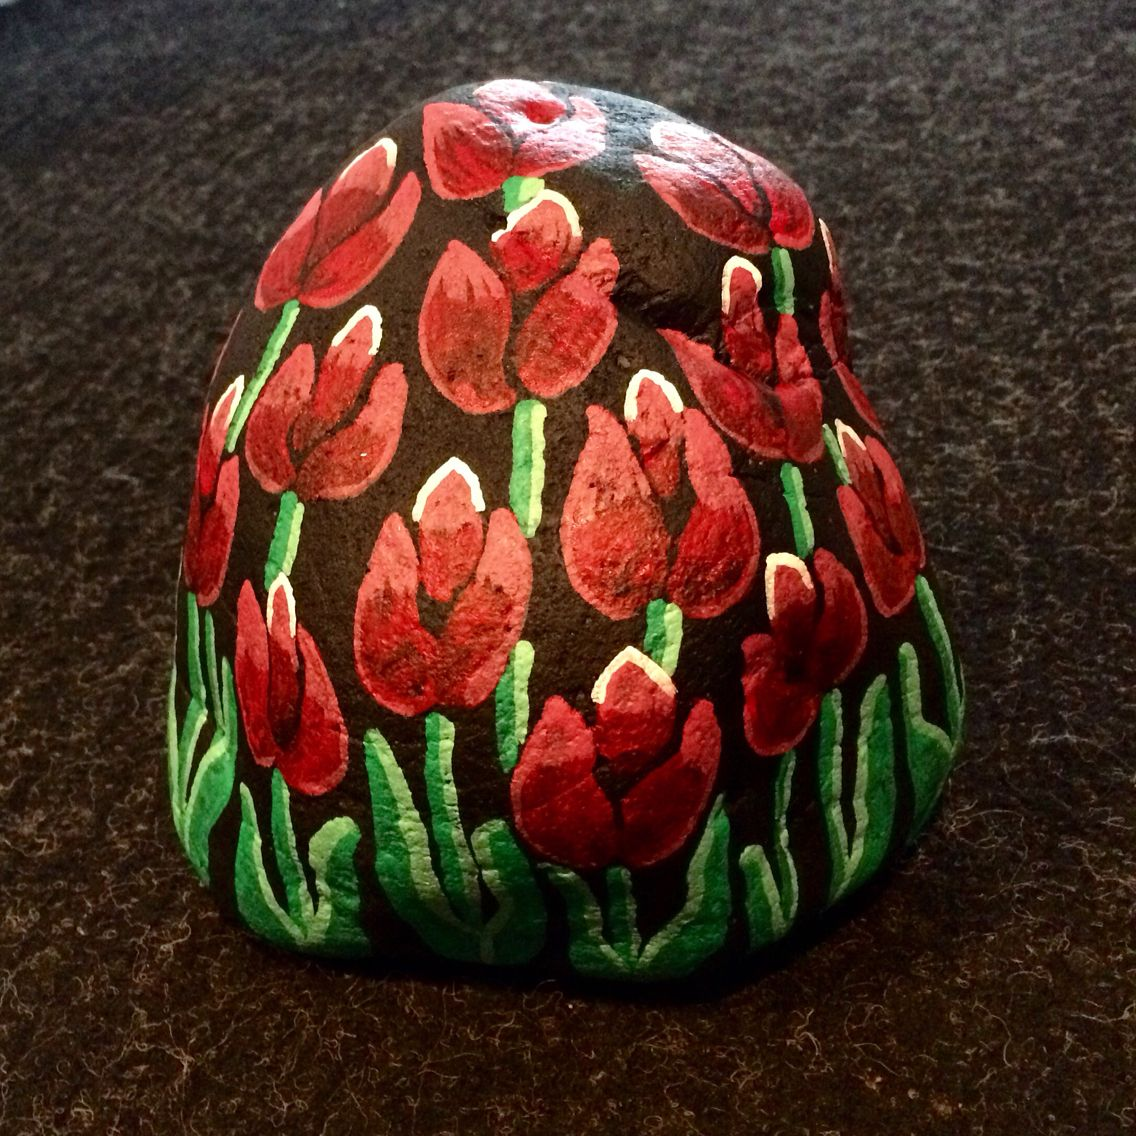 Tulips painted on a rock by Linda Hallett.